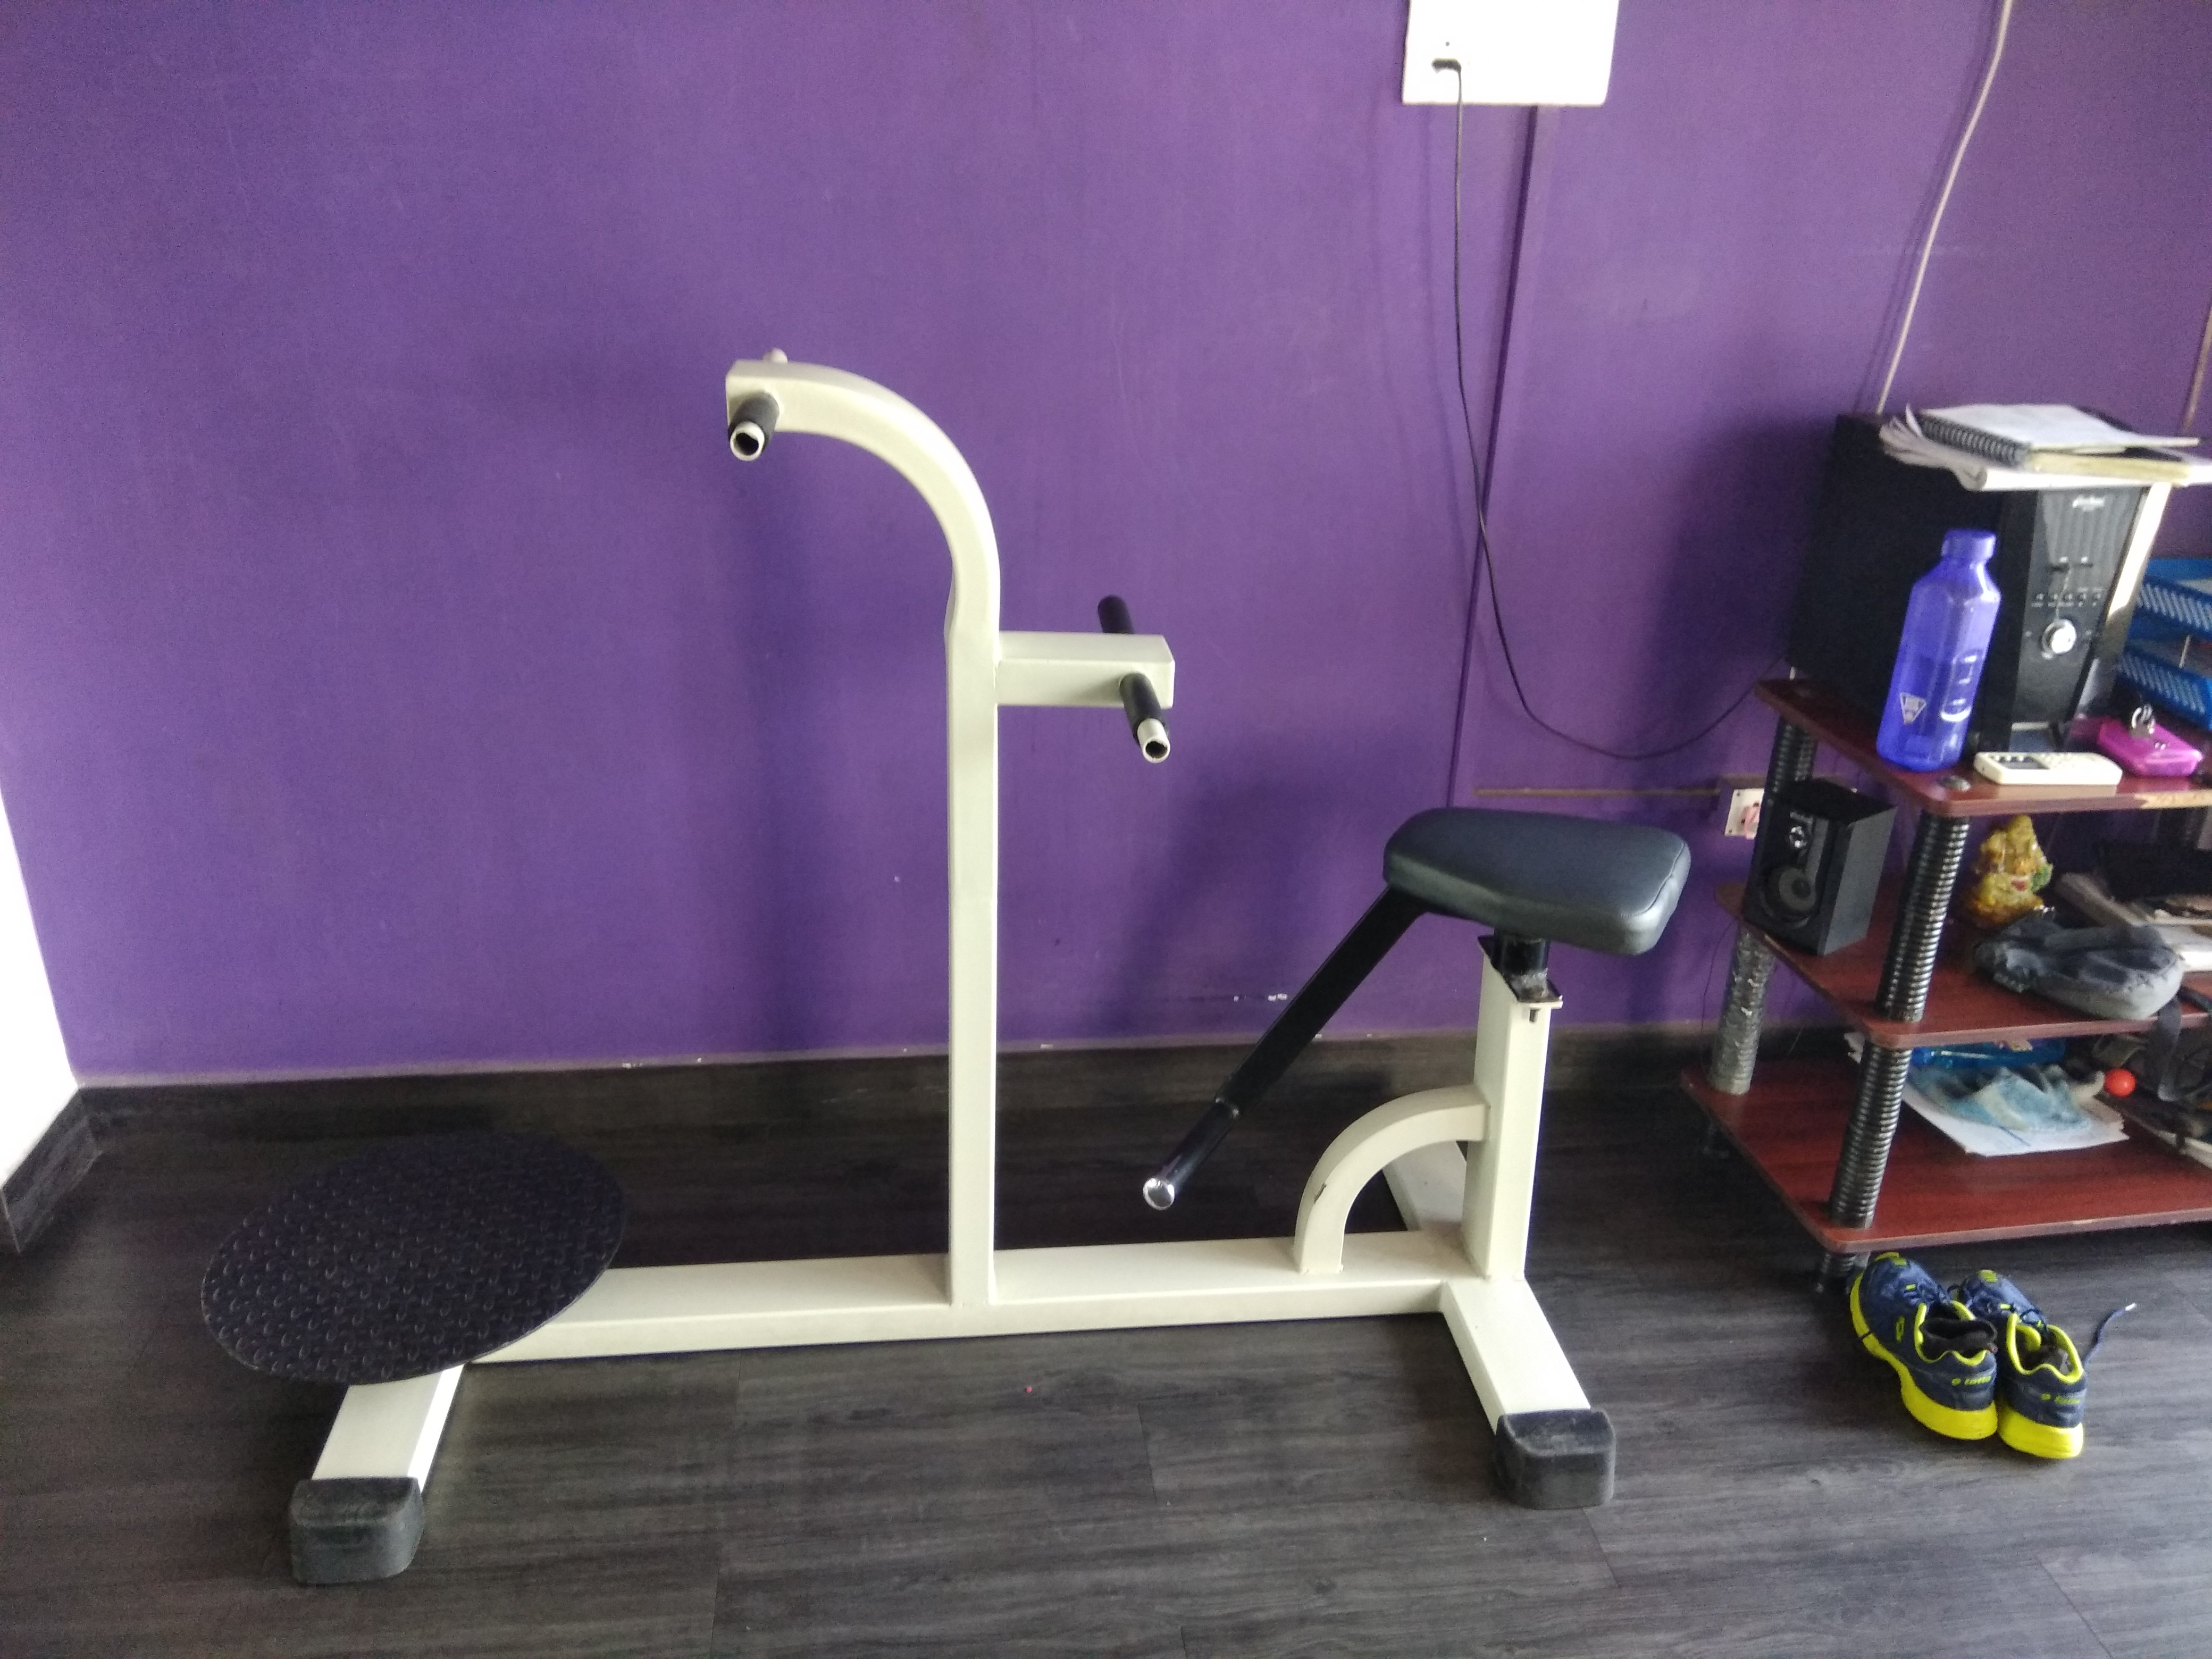 A Reputed Women's Gym Available for Sale in Chennai